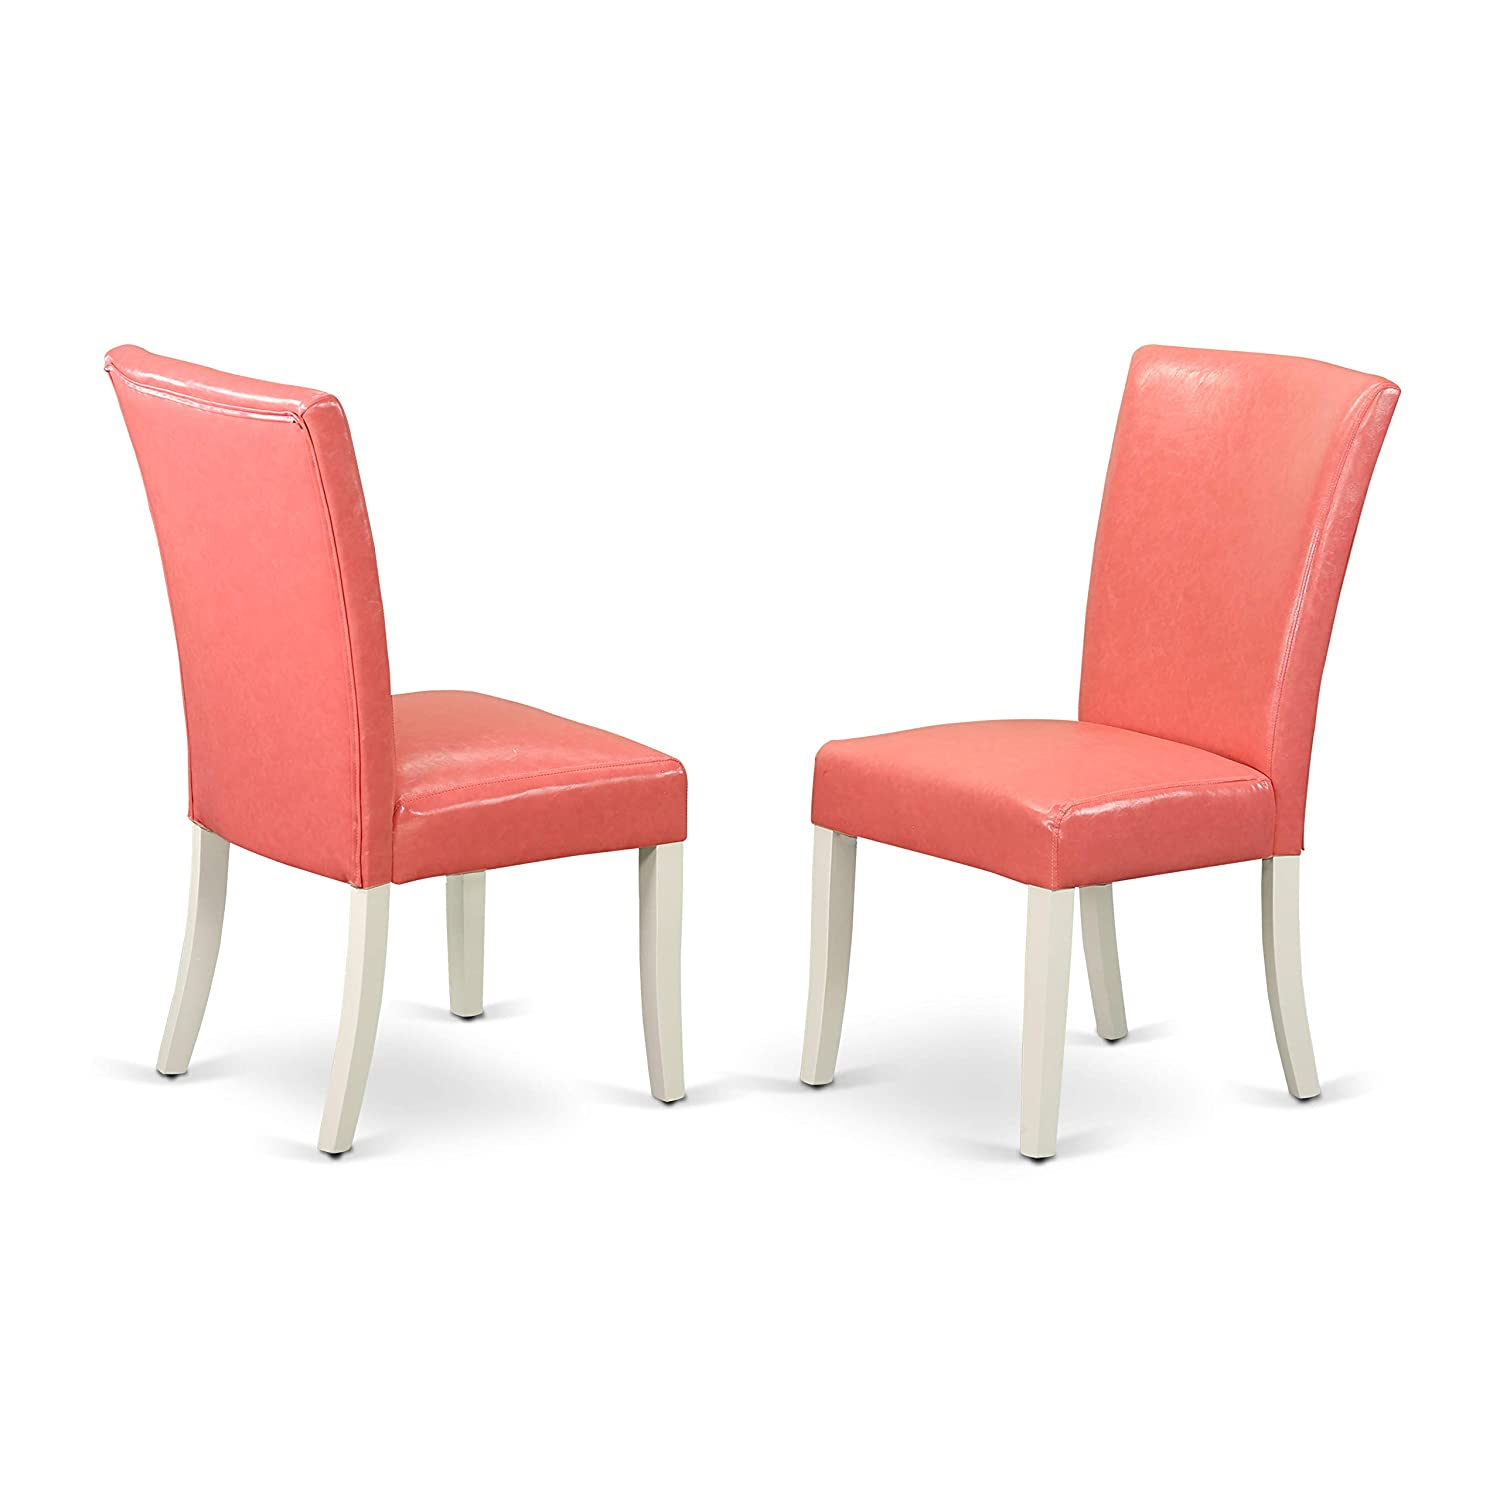 East West Furniture ALP2B78 Alpine Parson Chair with Linen White Finish Leg and PU Leather Color Pink Flamingo (Set of Two)